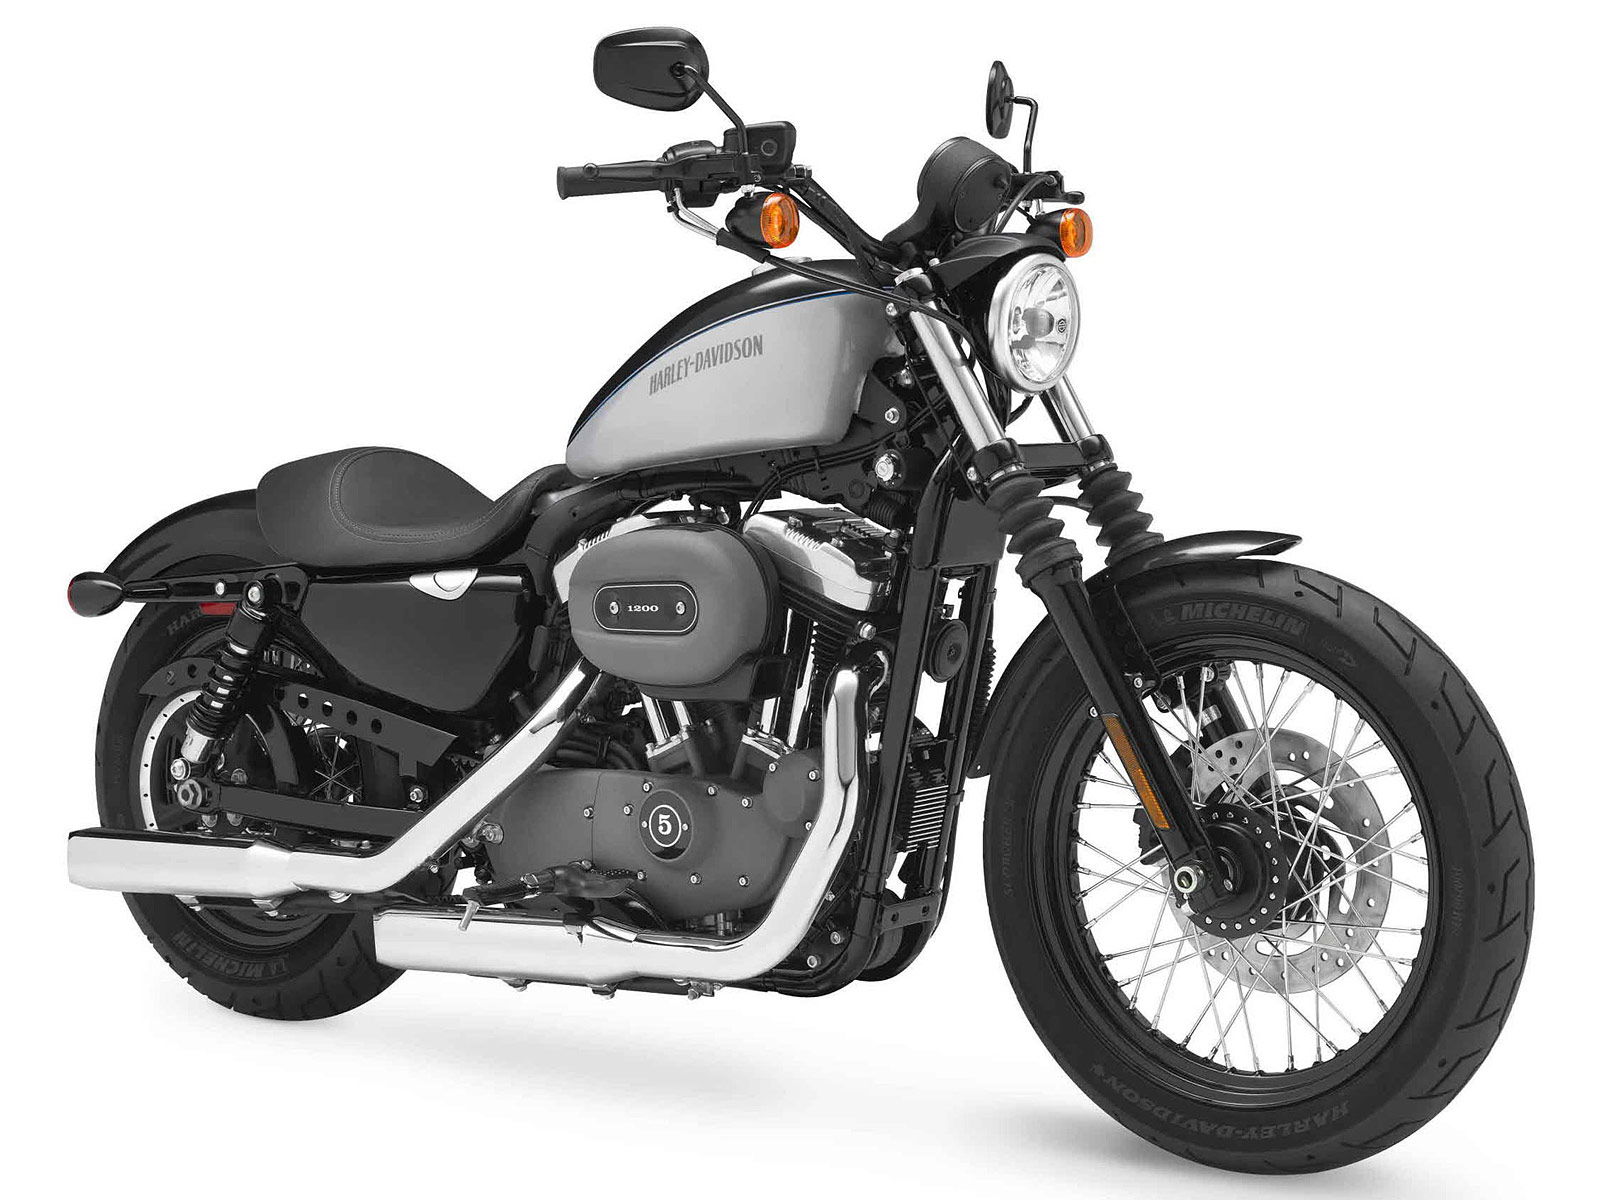 Harley Davidson: 2012 Harley-Davidson XL1200N Nightster Pictures, Review, Specs